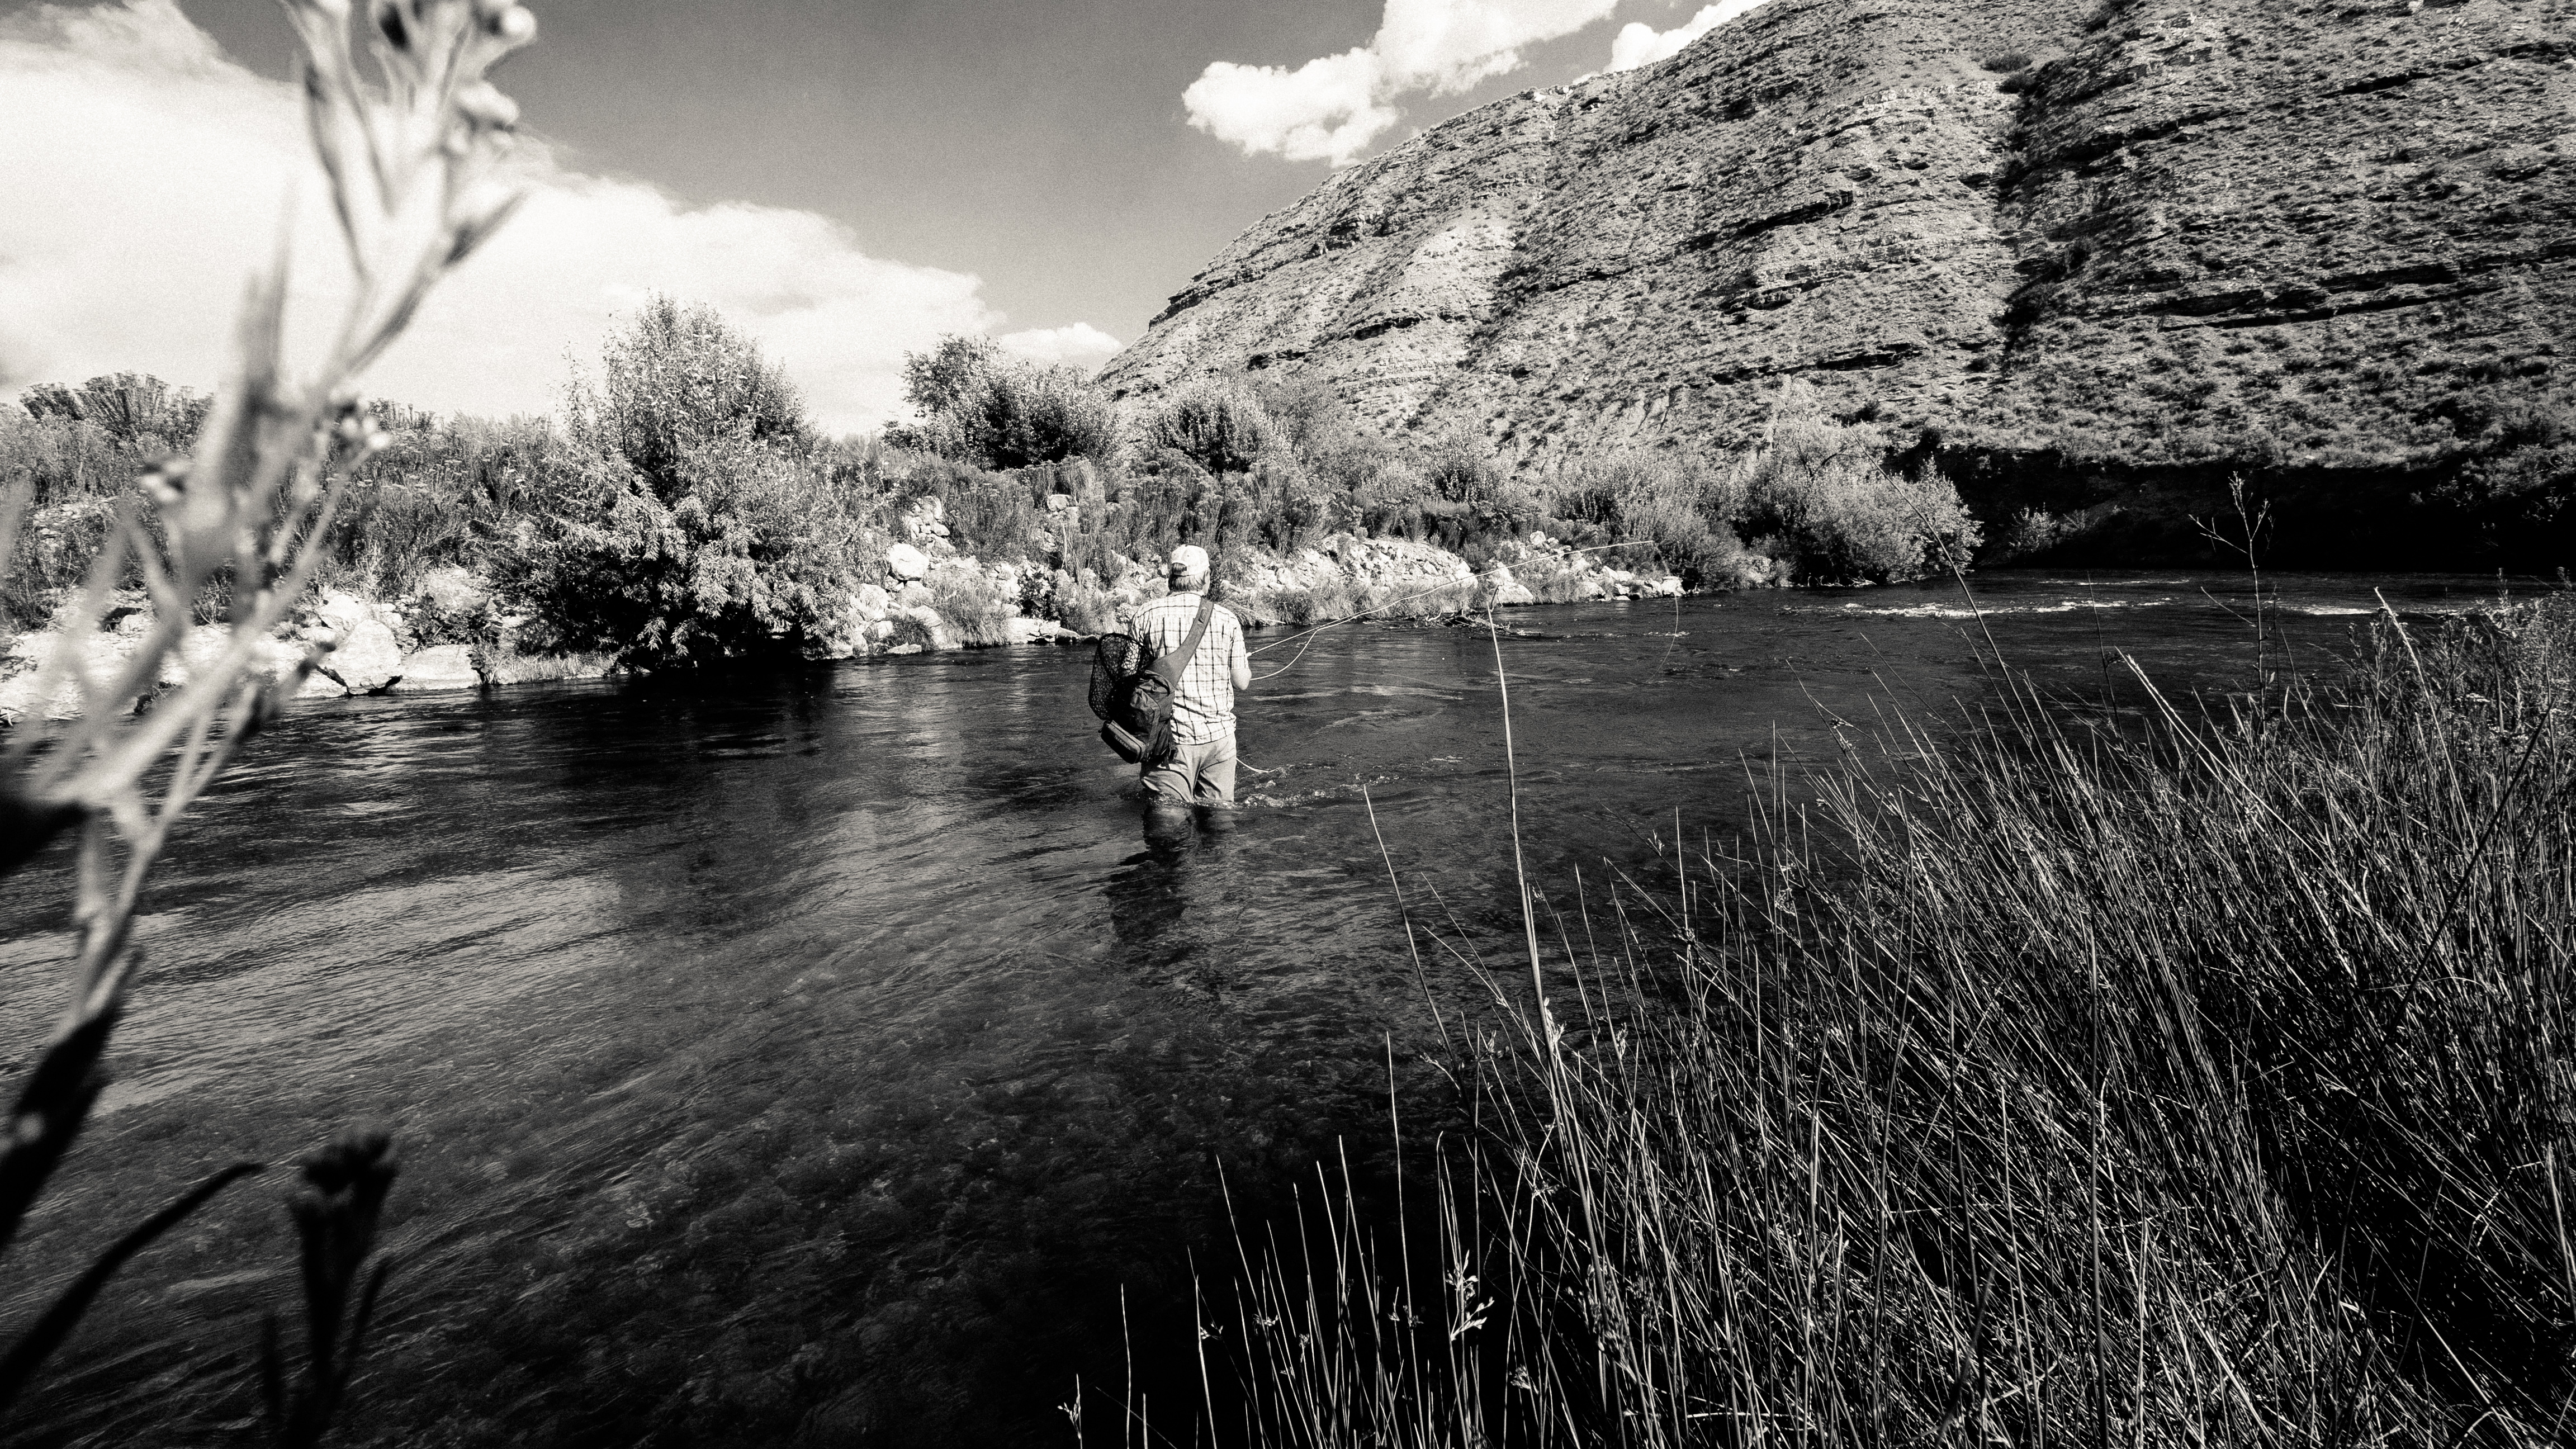 Blue lines matter park city fly fishing guides utah for Park city fly fishing